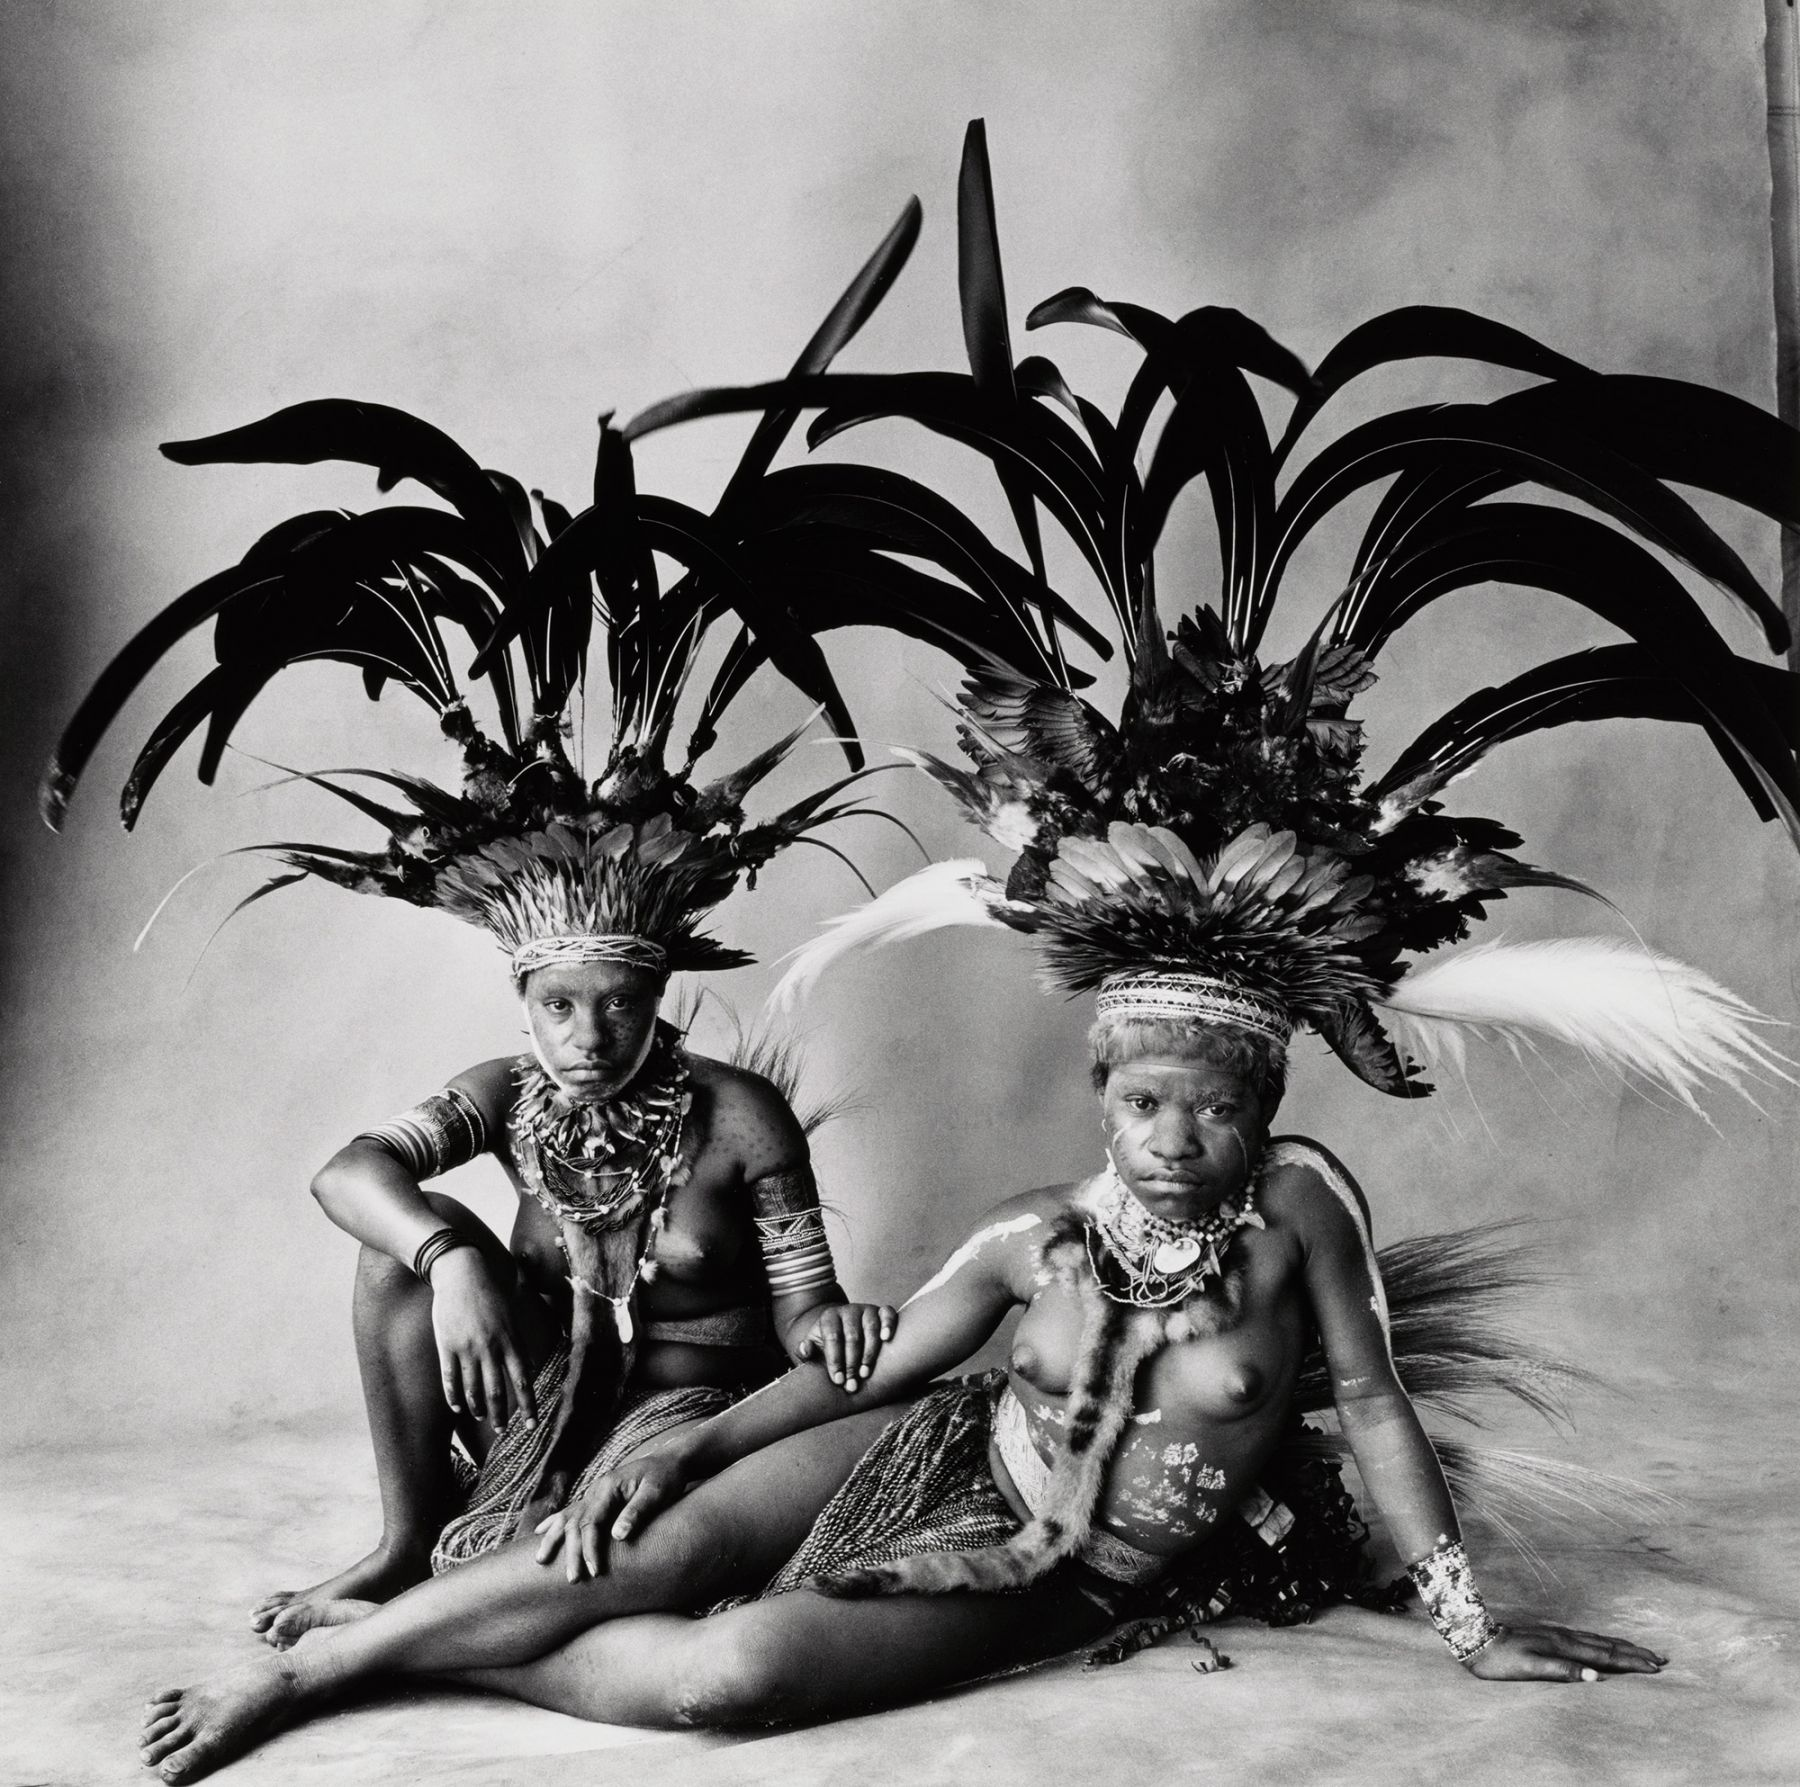 Two Young Nondugl Girls, New Guinea, 1970, Vintage Silver Gelatin Photograph, Ed. of 7